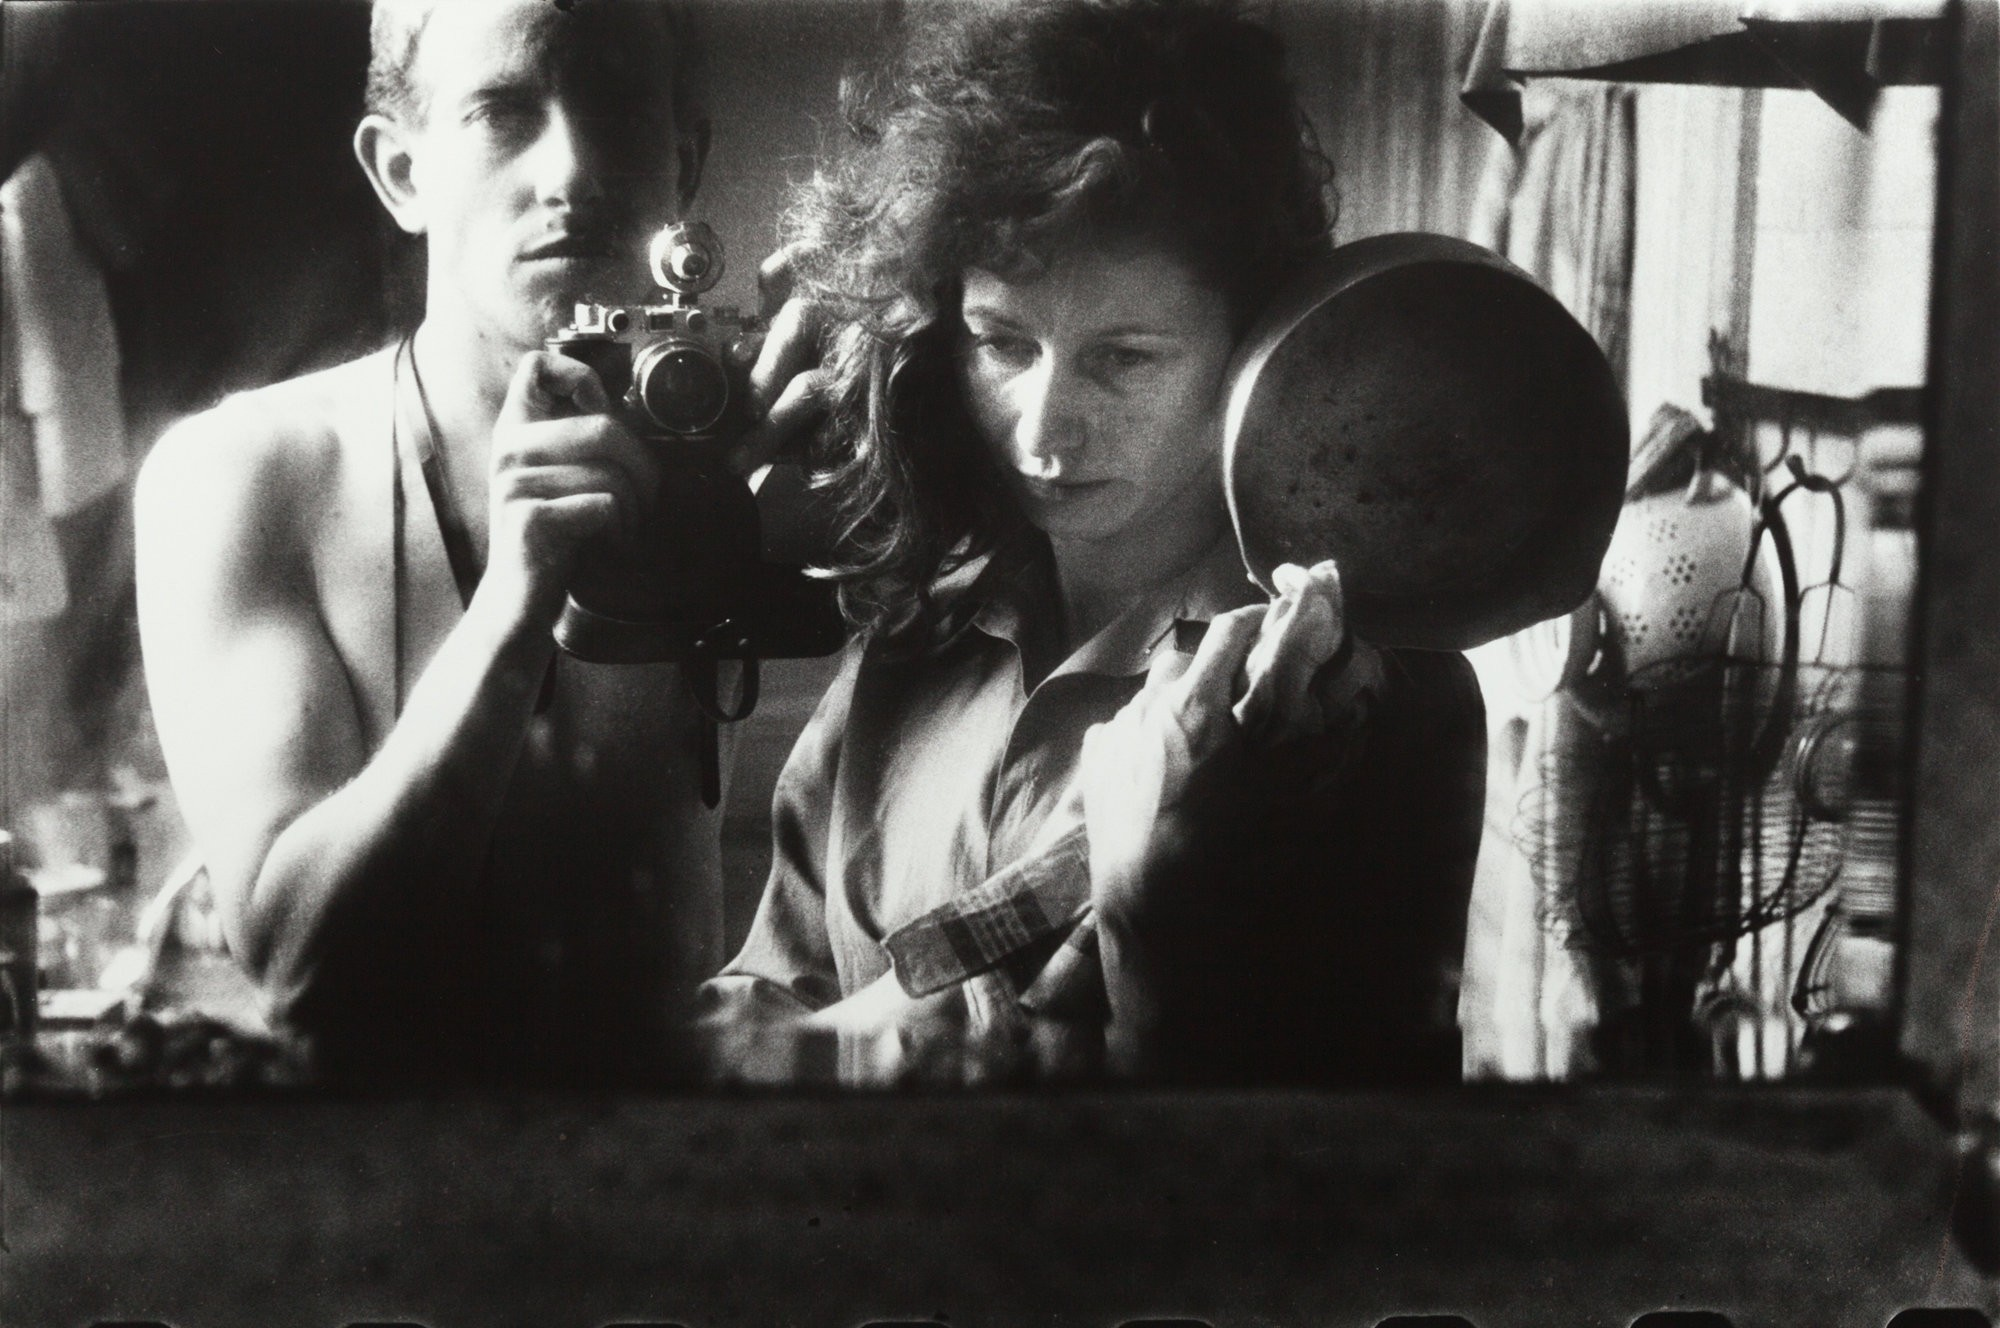 Large 5. ed van der elsken  selfportrait with ata kand   paris  1953